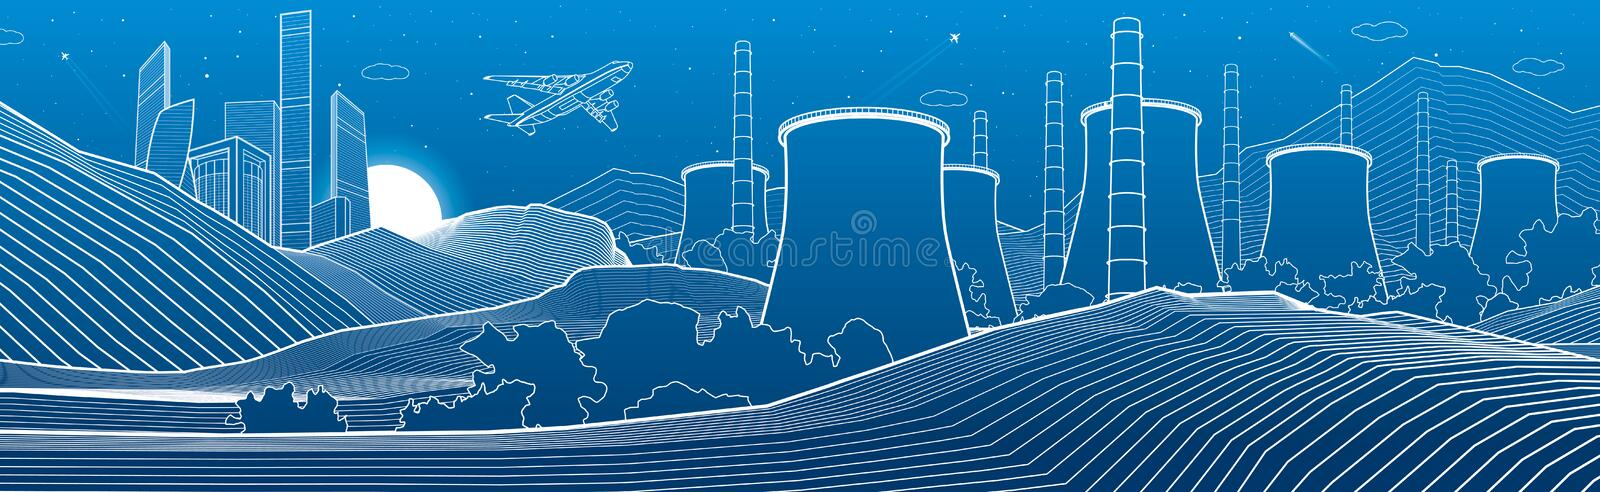 Outline industry illustration panoramic. Night city scene. Power Plant in mountains. White lines on blue background. Vector design stock illustration